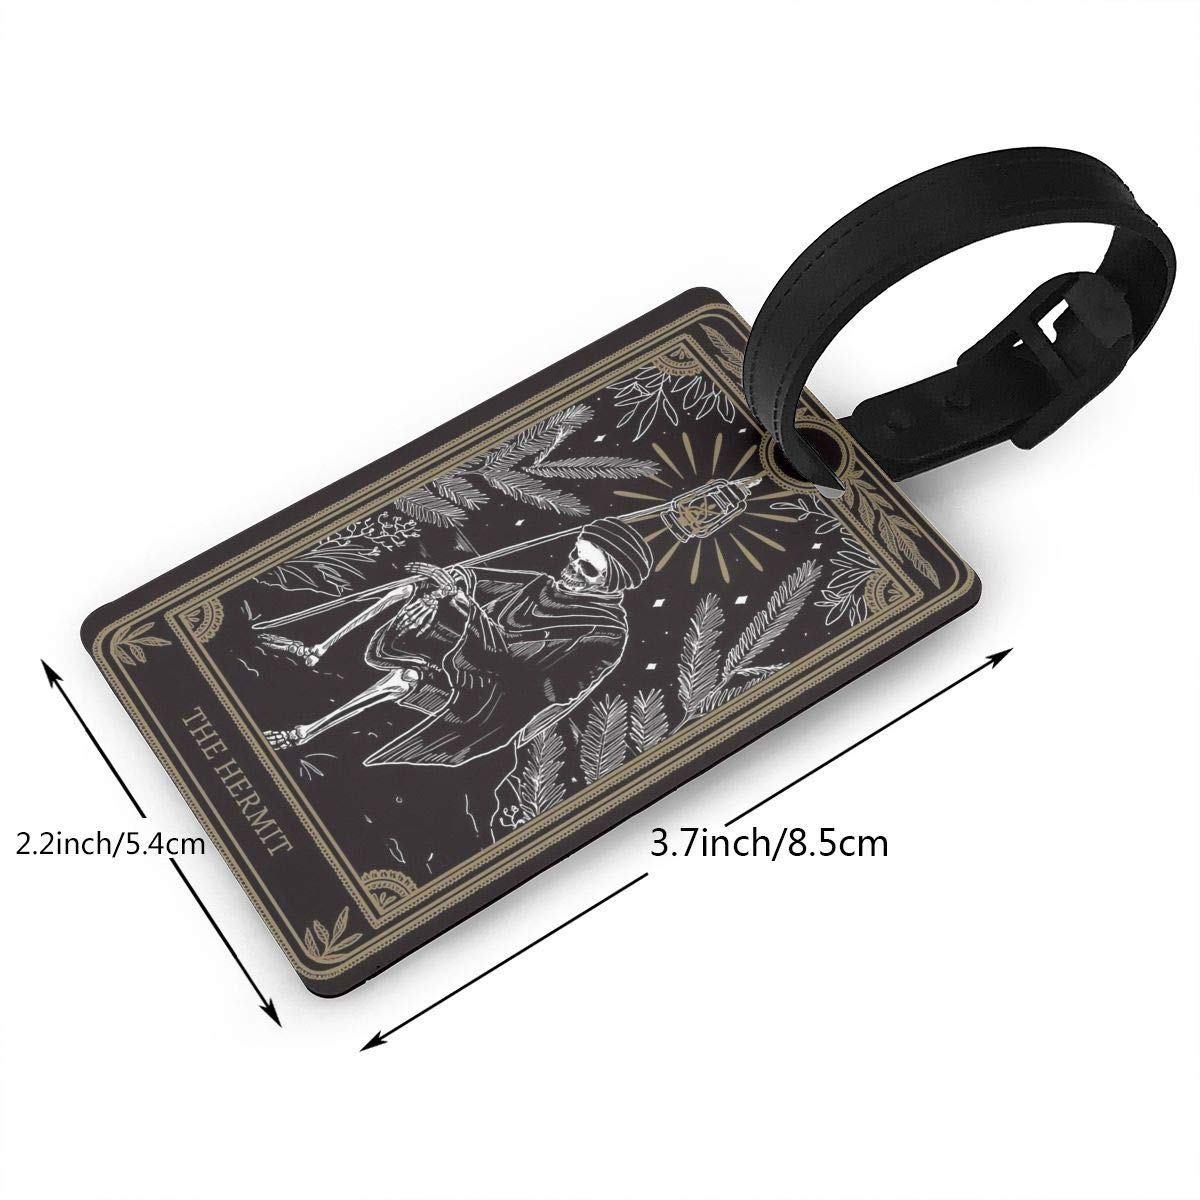 2 Pack Luggage Tags Tarot Cards The Hermat Handbag Tag For Travel Tags Accessories